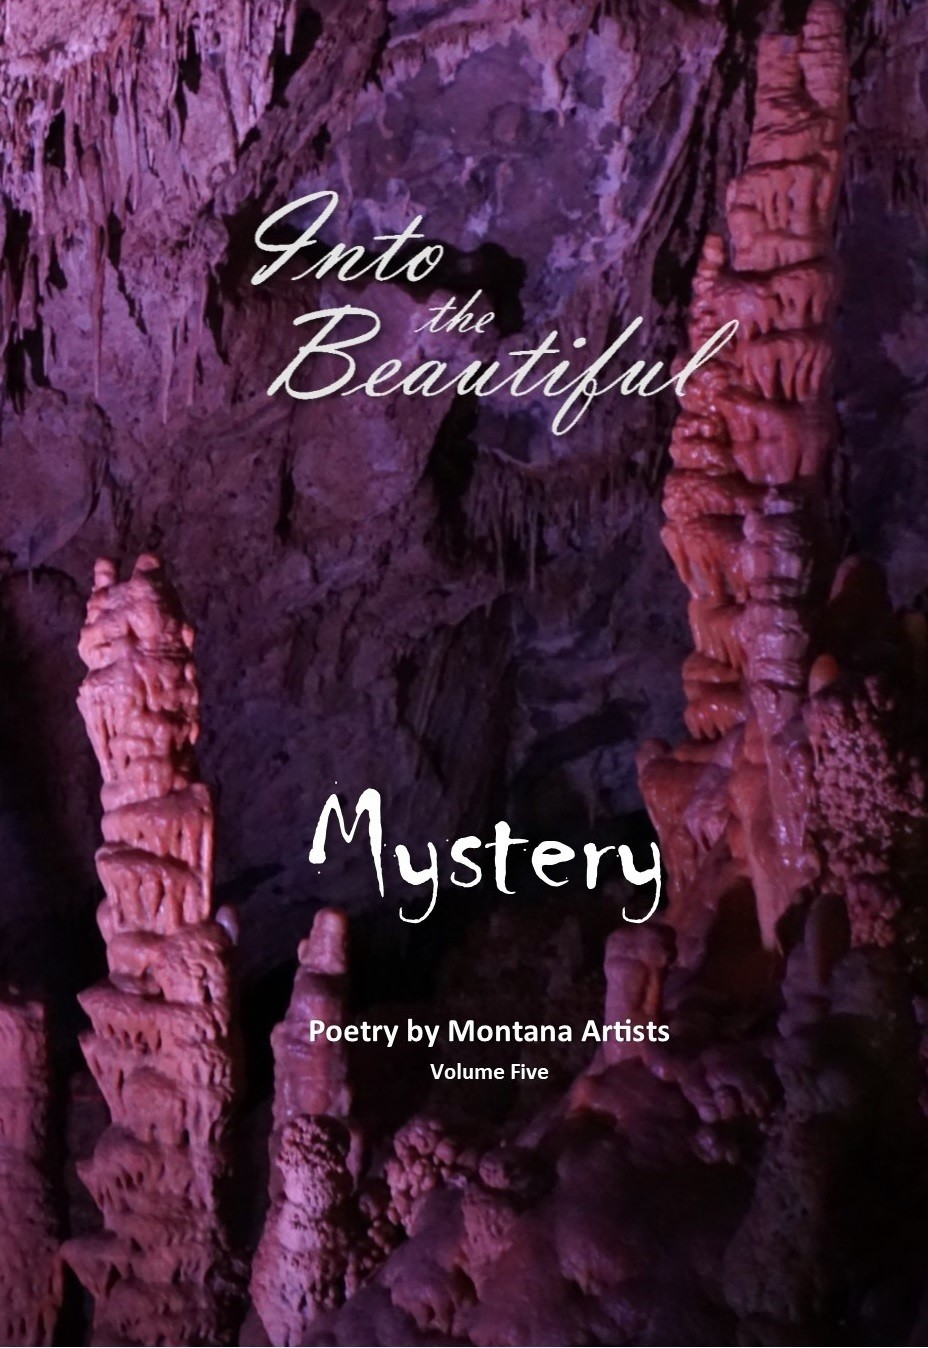 Into the Beautiful: Mystery (Poetry by Montana Artists, Vol. V, 2019)